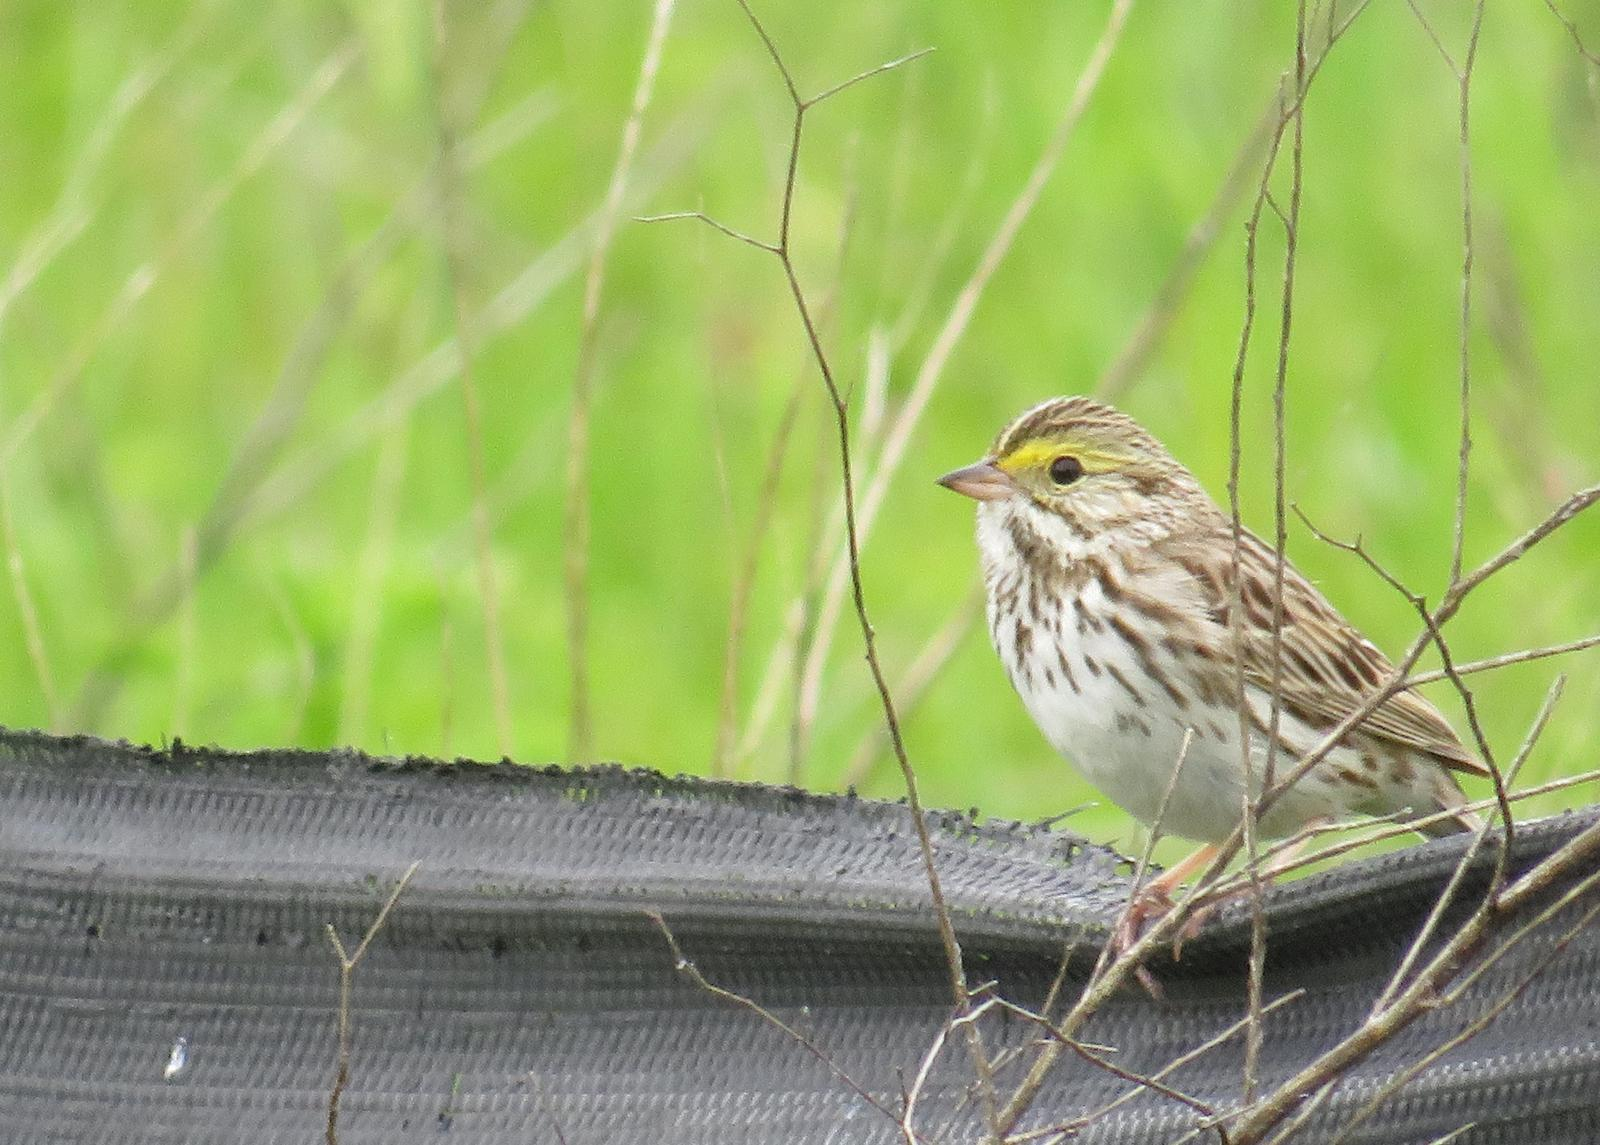 Savannah Sparrow Photo by Jeff Harding